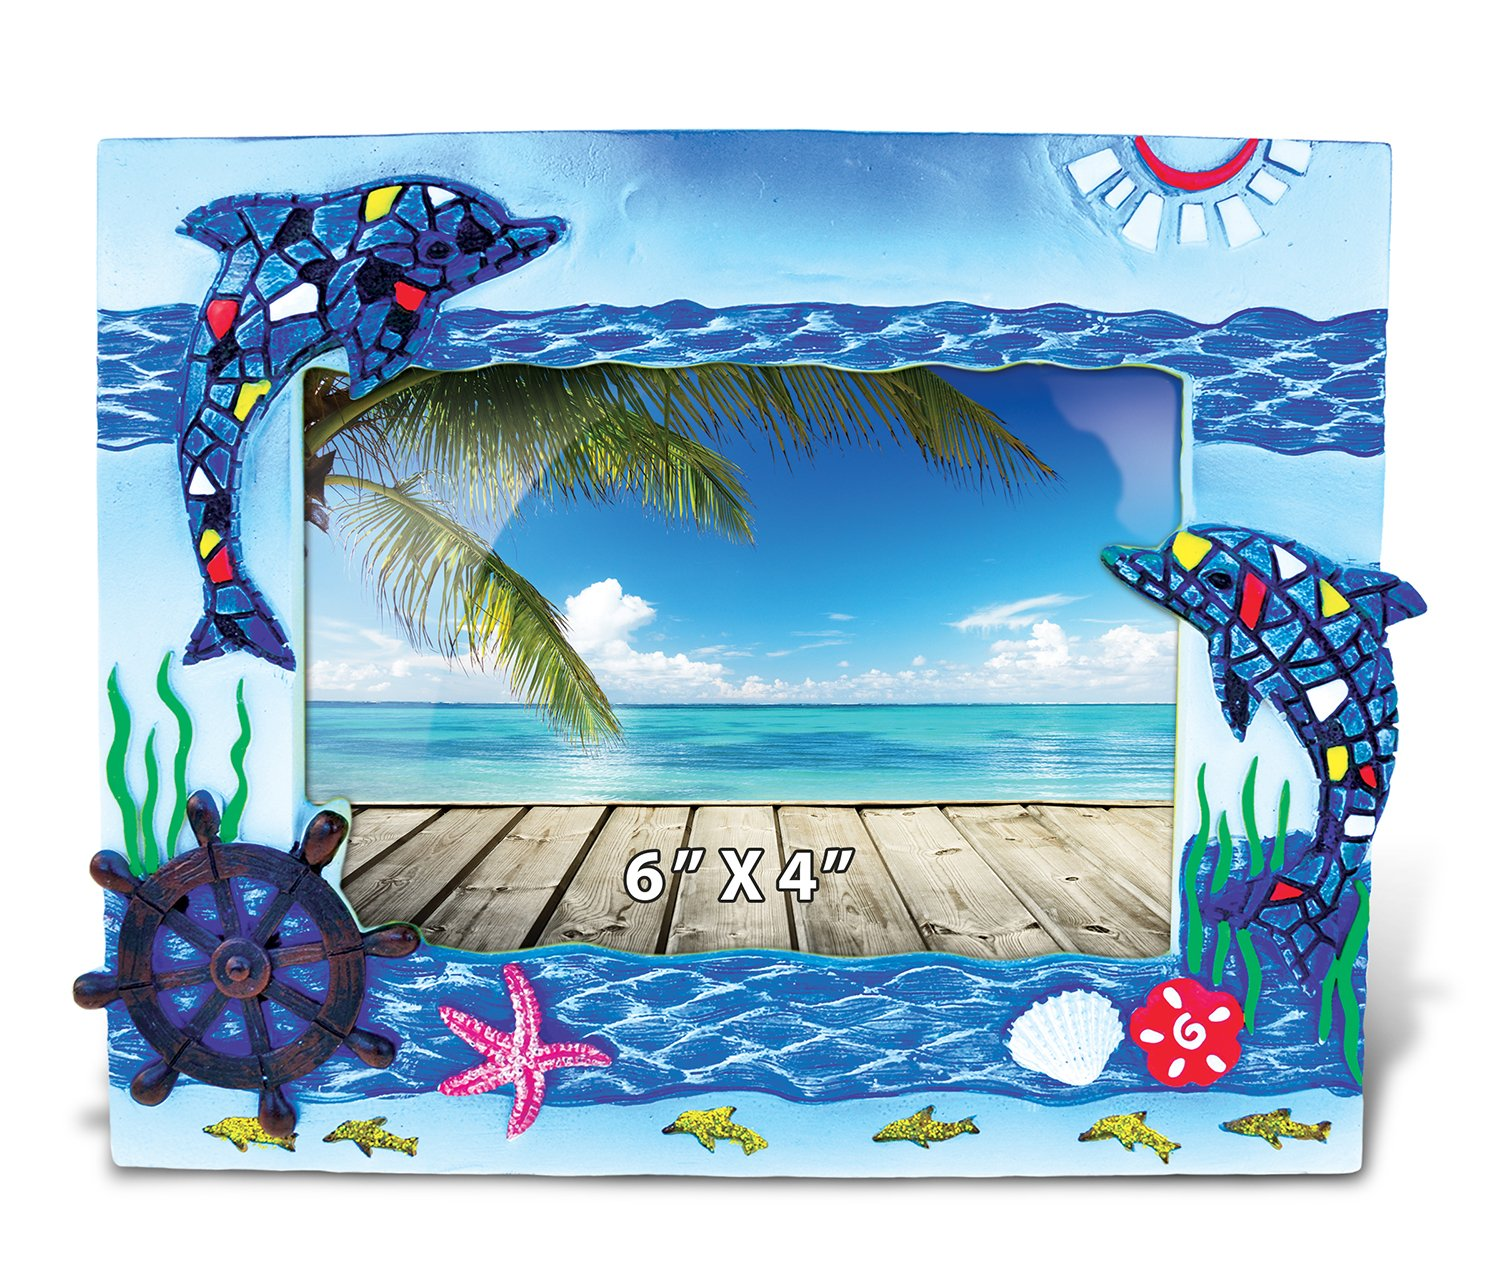 Puzzled Dolphin Blue Nautical Mosaic Picture Frame - Ocean Theme 4 x 6 Inch Resin Photo Holder - Elegant Animal Home Decor Wall Table Top Memory Gift Ideas - Item 9503